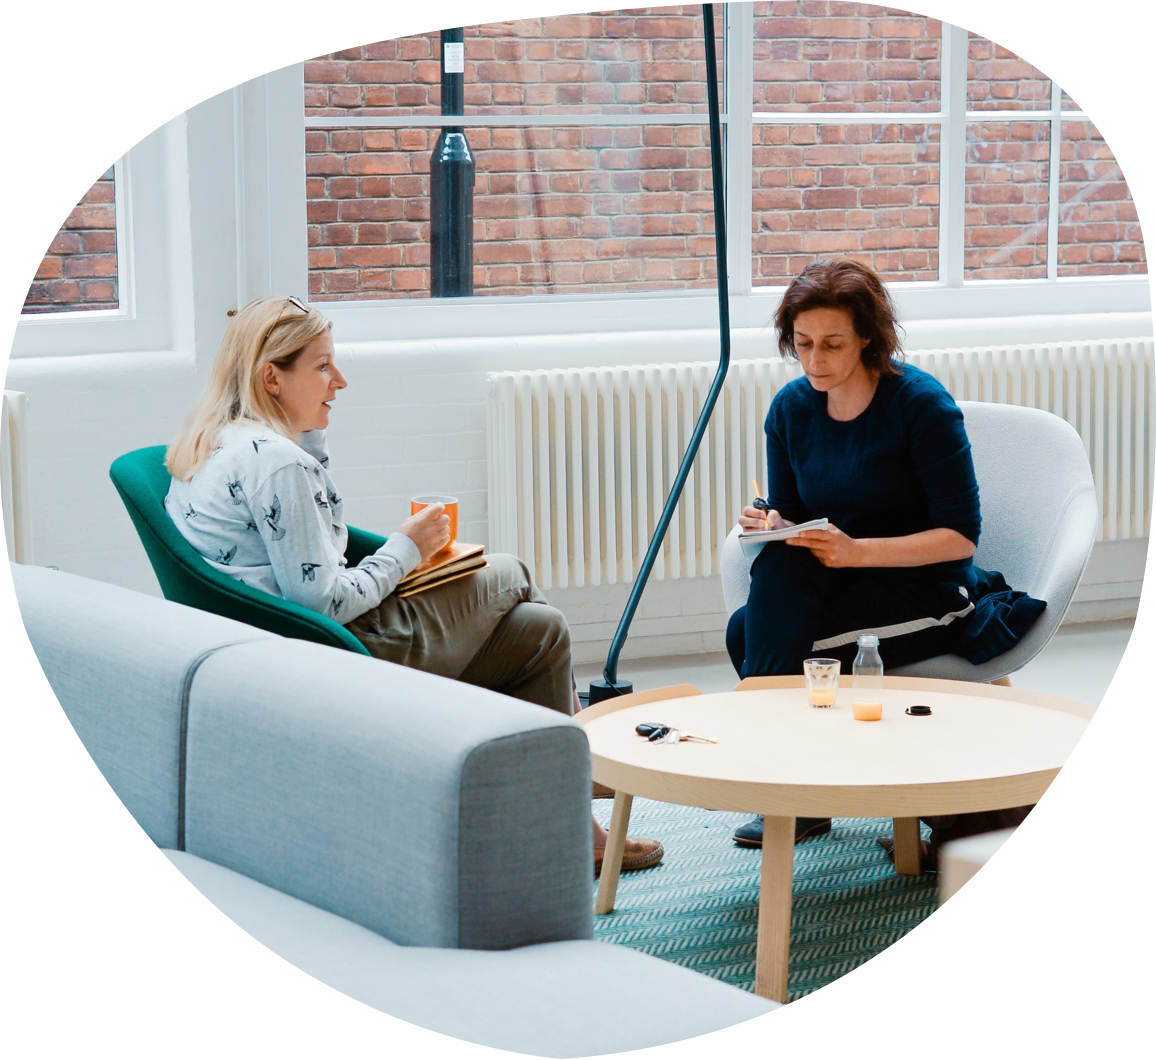 A work place discussion between two women